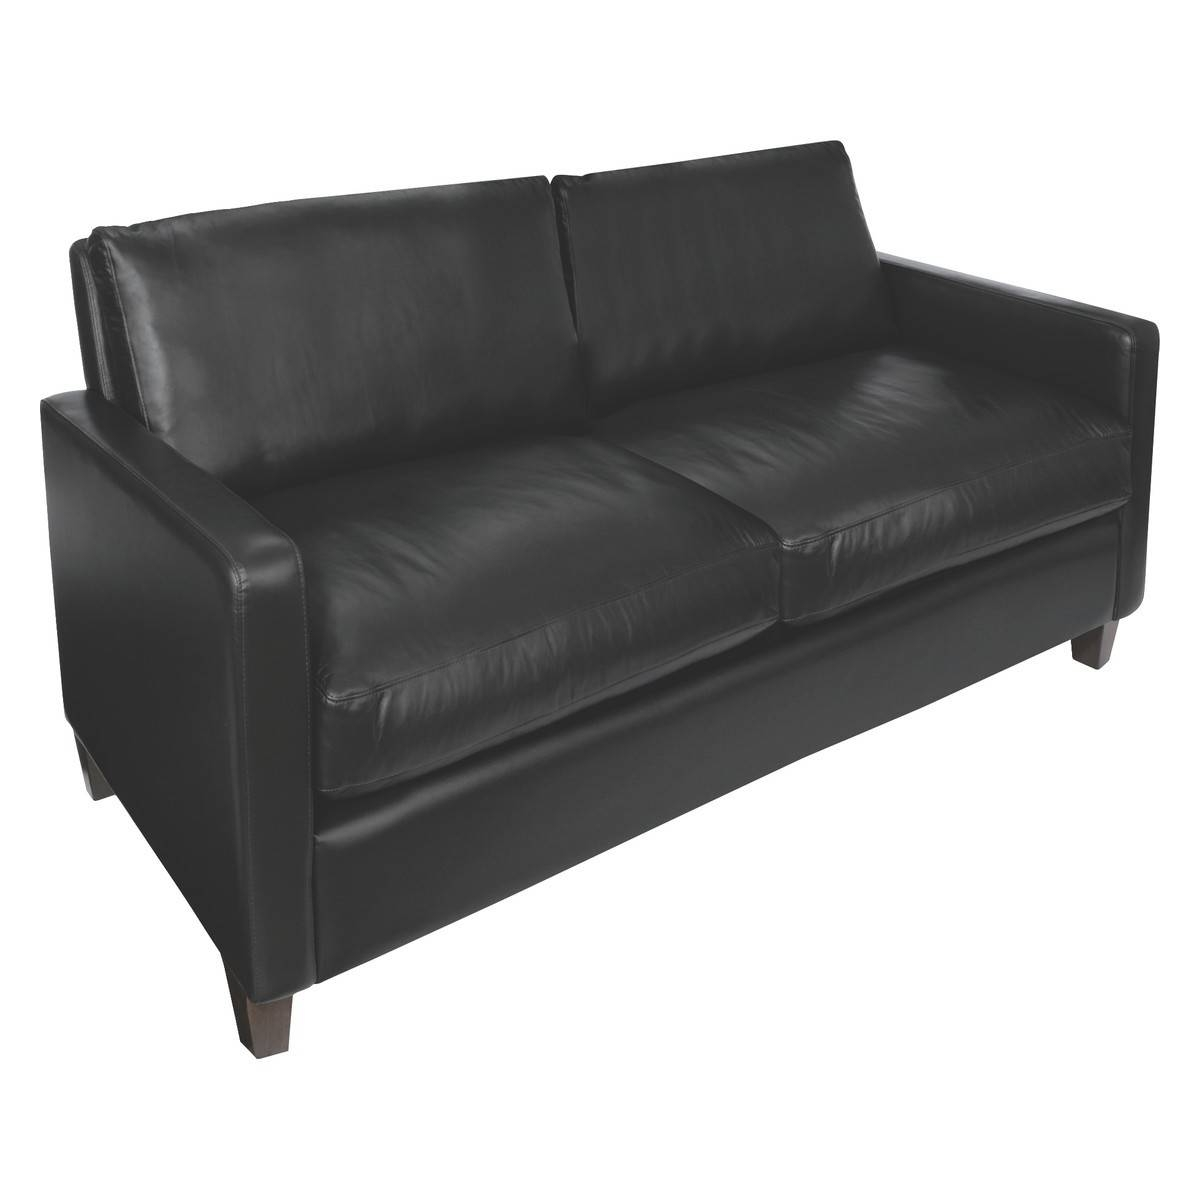 Chester Black Leather 2 Seater Sofa, Dark Stained Feet | Buy Now pertaining to Black 2 Seater Sofas (Image 10 of 30)